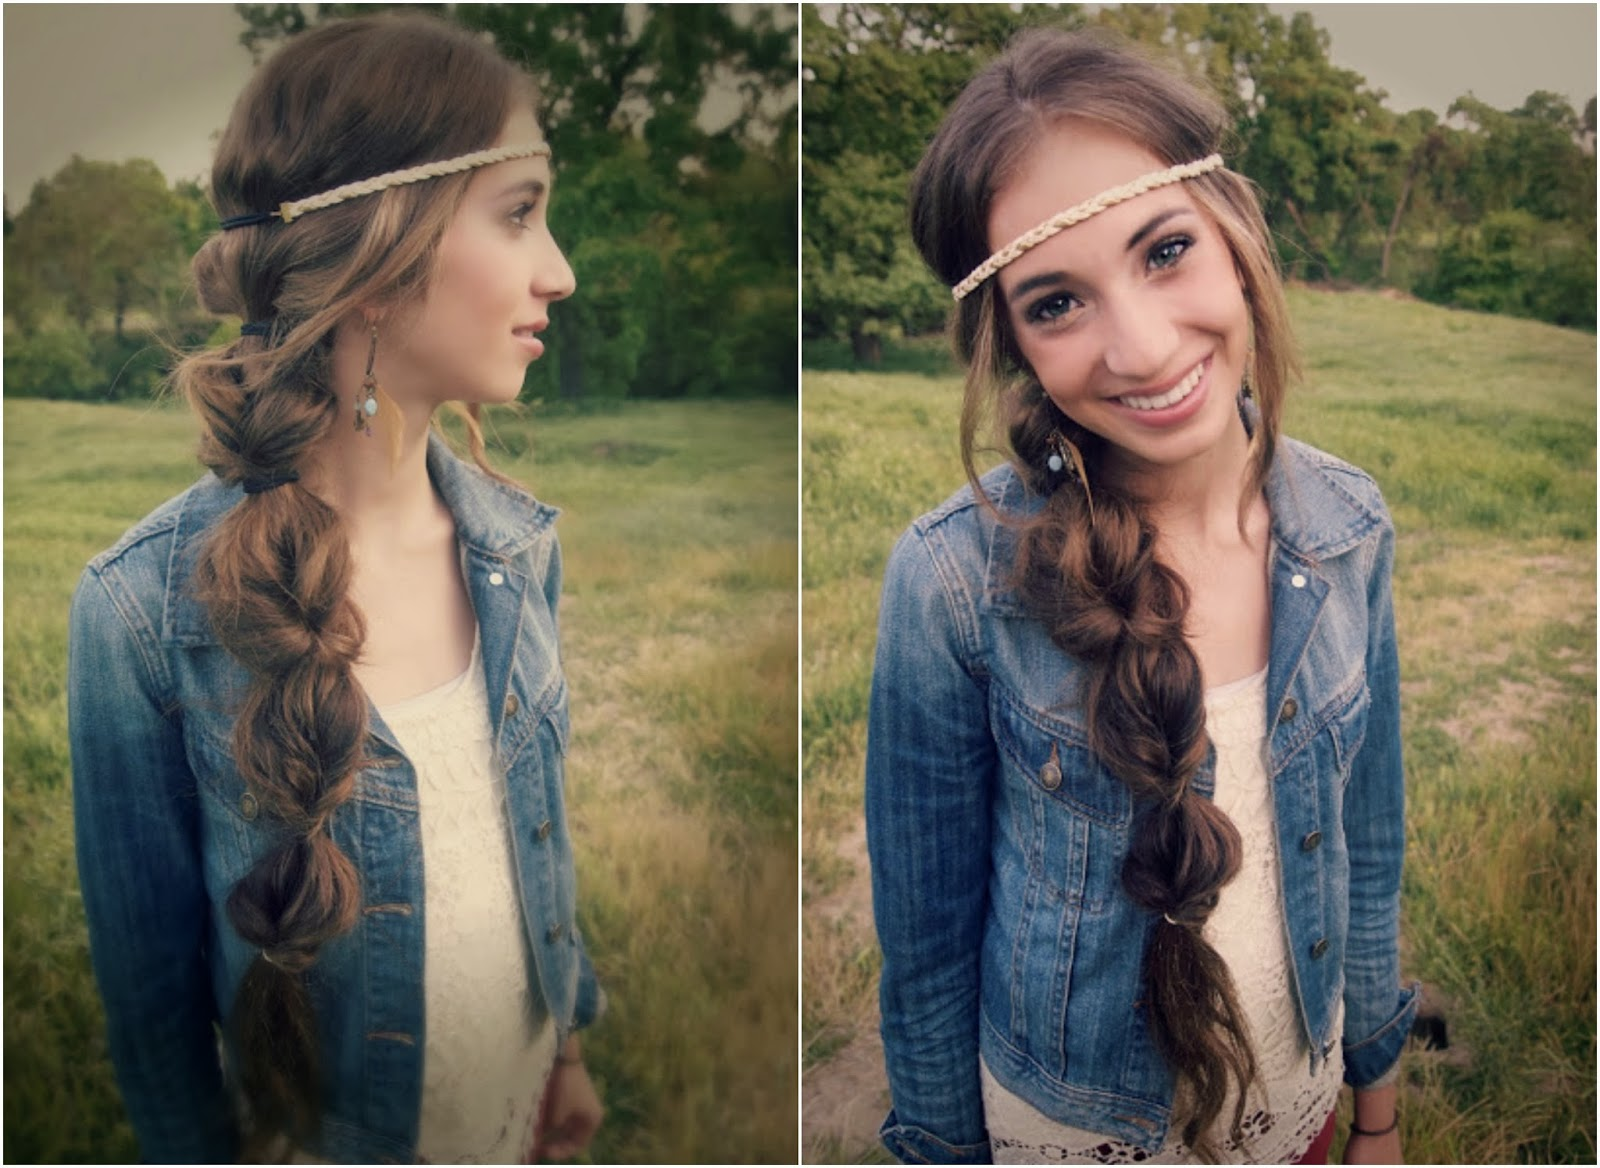 A lifetime of rain hair tutorial boho braid the final touch is to pull the hair on the sides of each section to give volume and a messy boho look as in step 7 baditri Choice Image